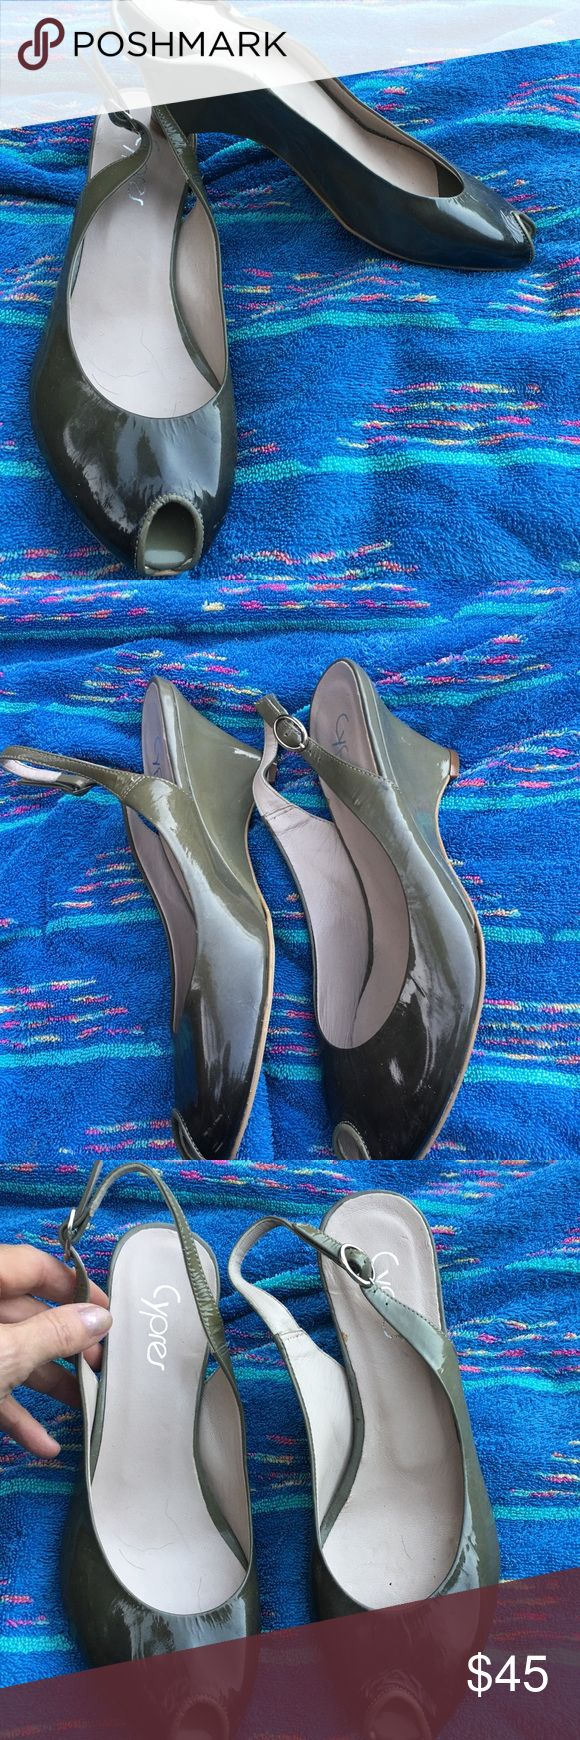 NEW GRAY OMBRE PATENT LEATHER SLINGBACK WEDGE PUMP Brand new $125 opentoe slingback pumps in an amazing gray ombre.  Wedge heel. By Cypres. Size 38 cypres Shoes Wedges